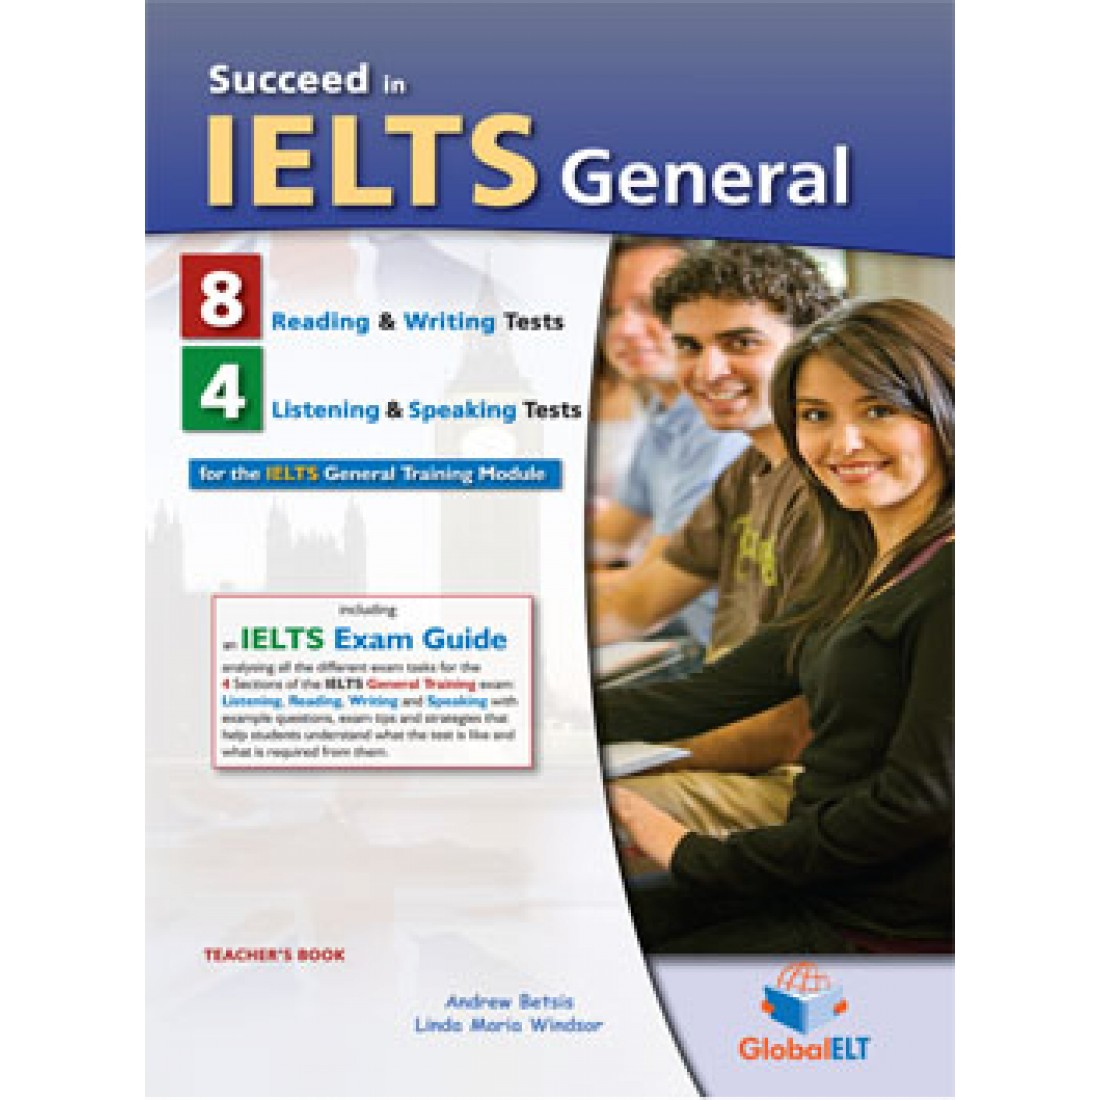 Succeed in IELTS General 8 Reading & Writing - 4 Listening & Speaking Tests  Teacher's Book